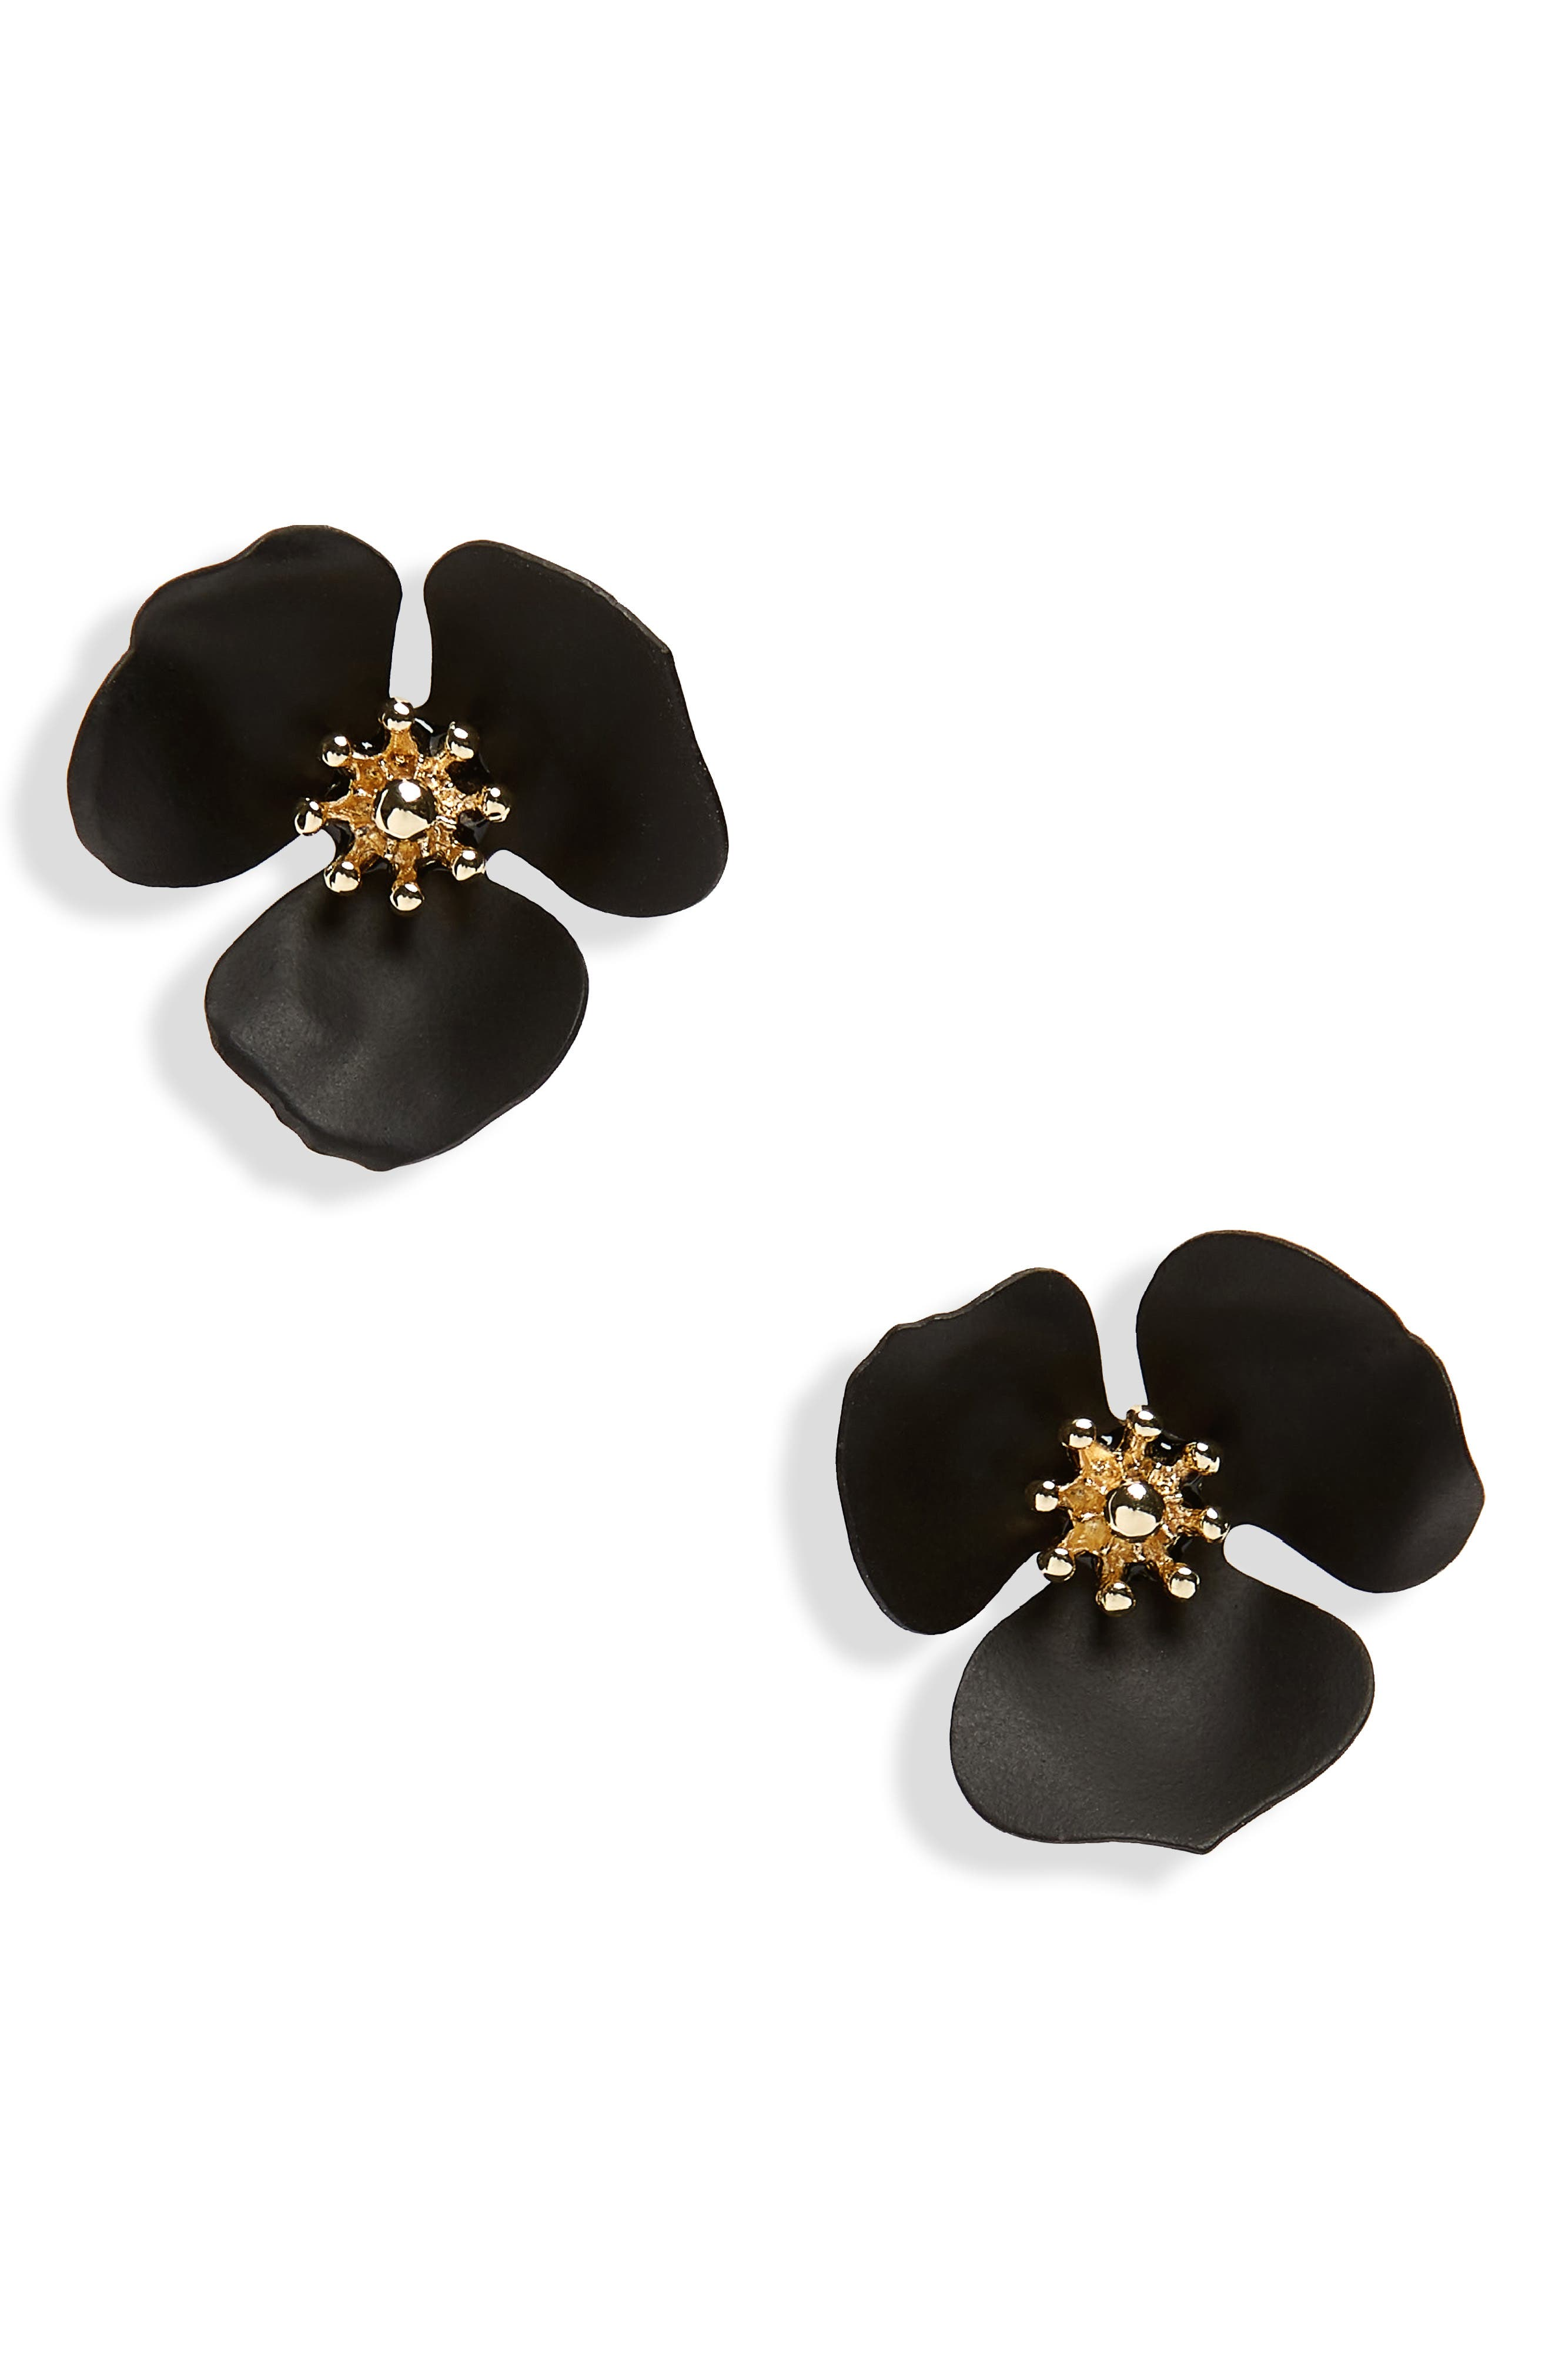 Lily Flower Stud Earrings,                         Main,                         color, 001